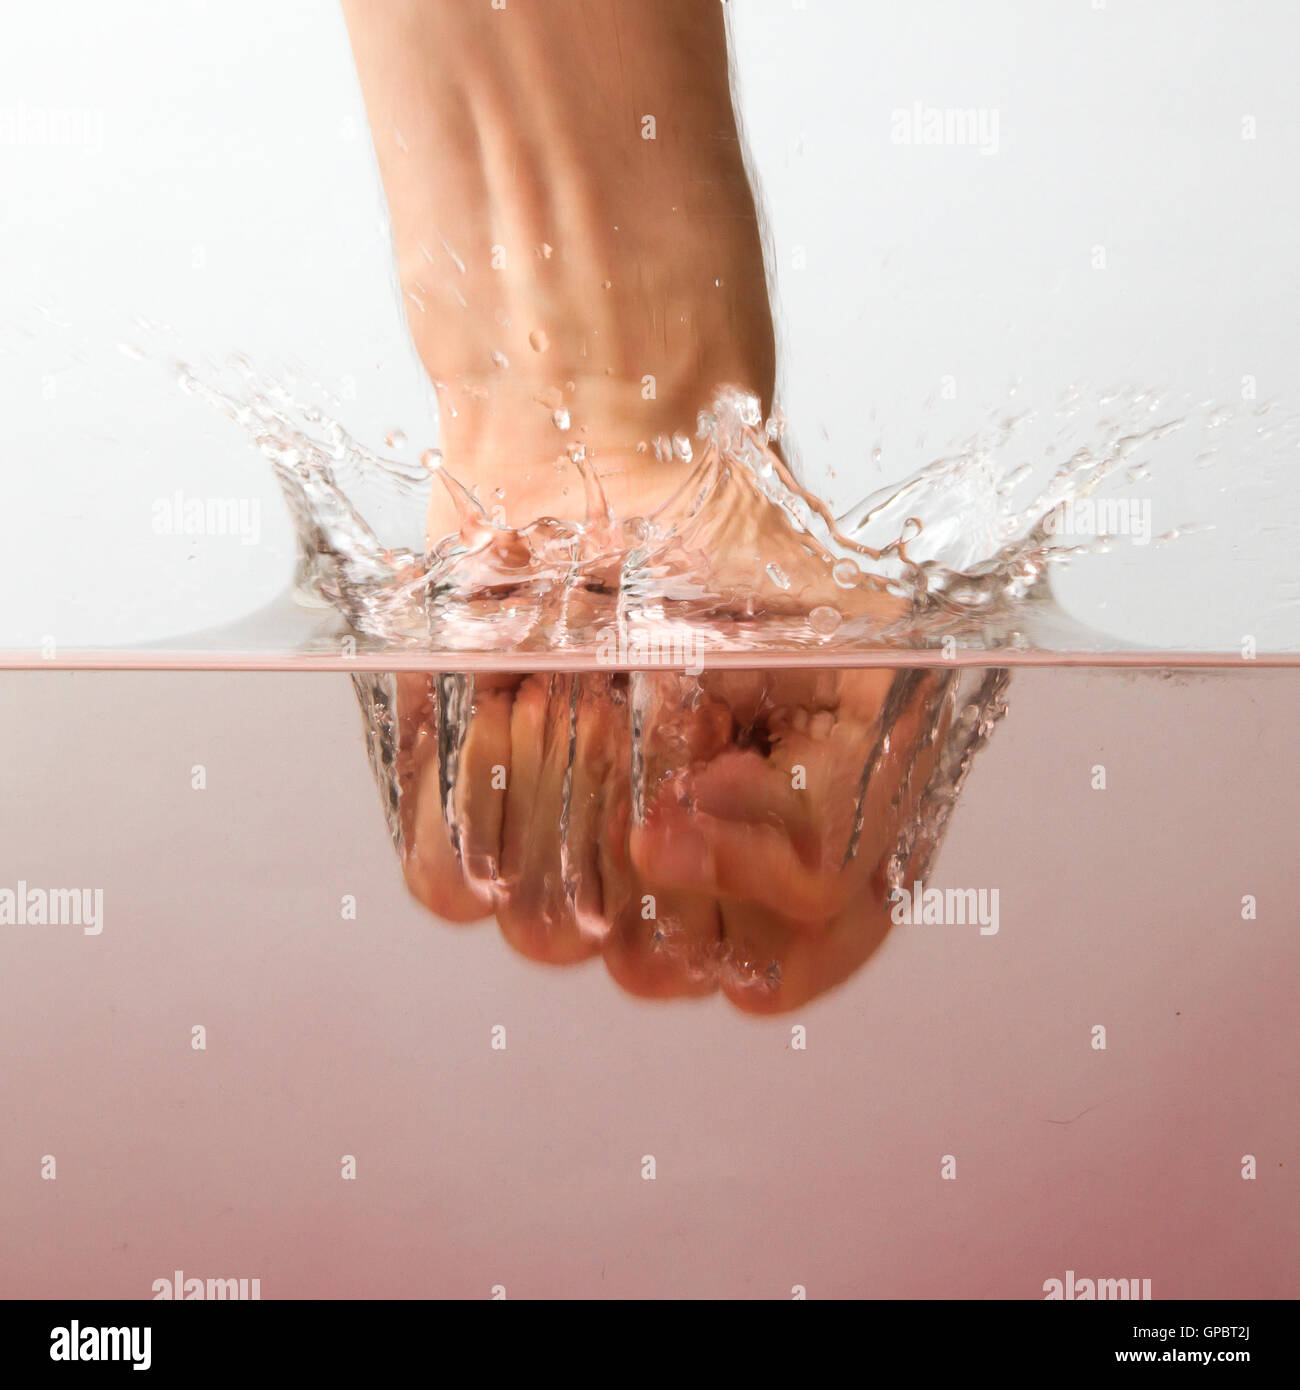 Hand (fist) with splashing red water - Stock Image